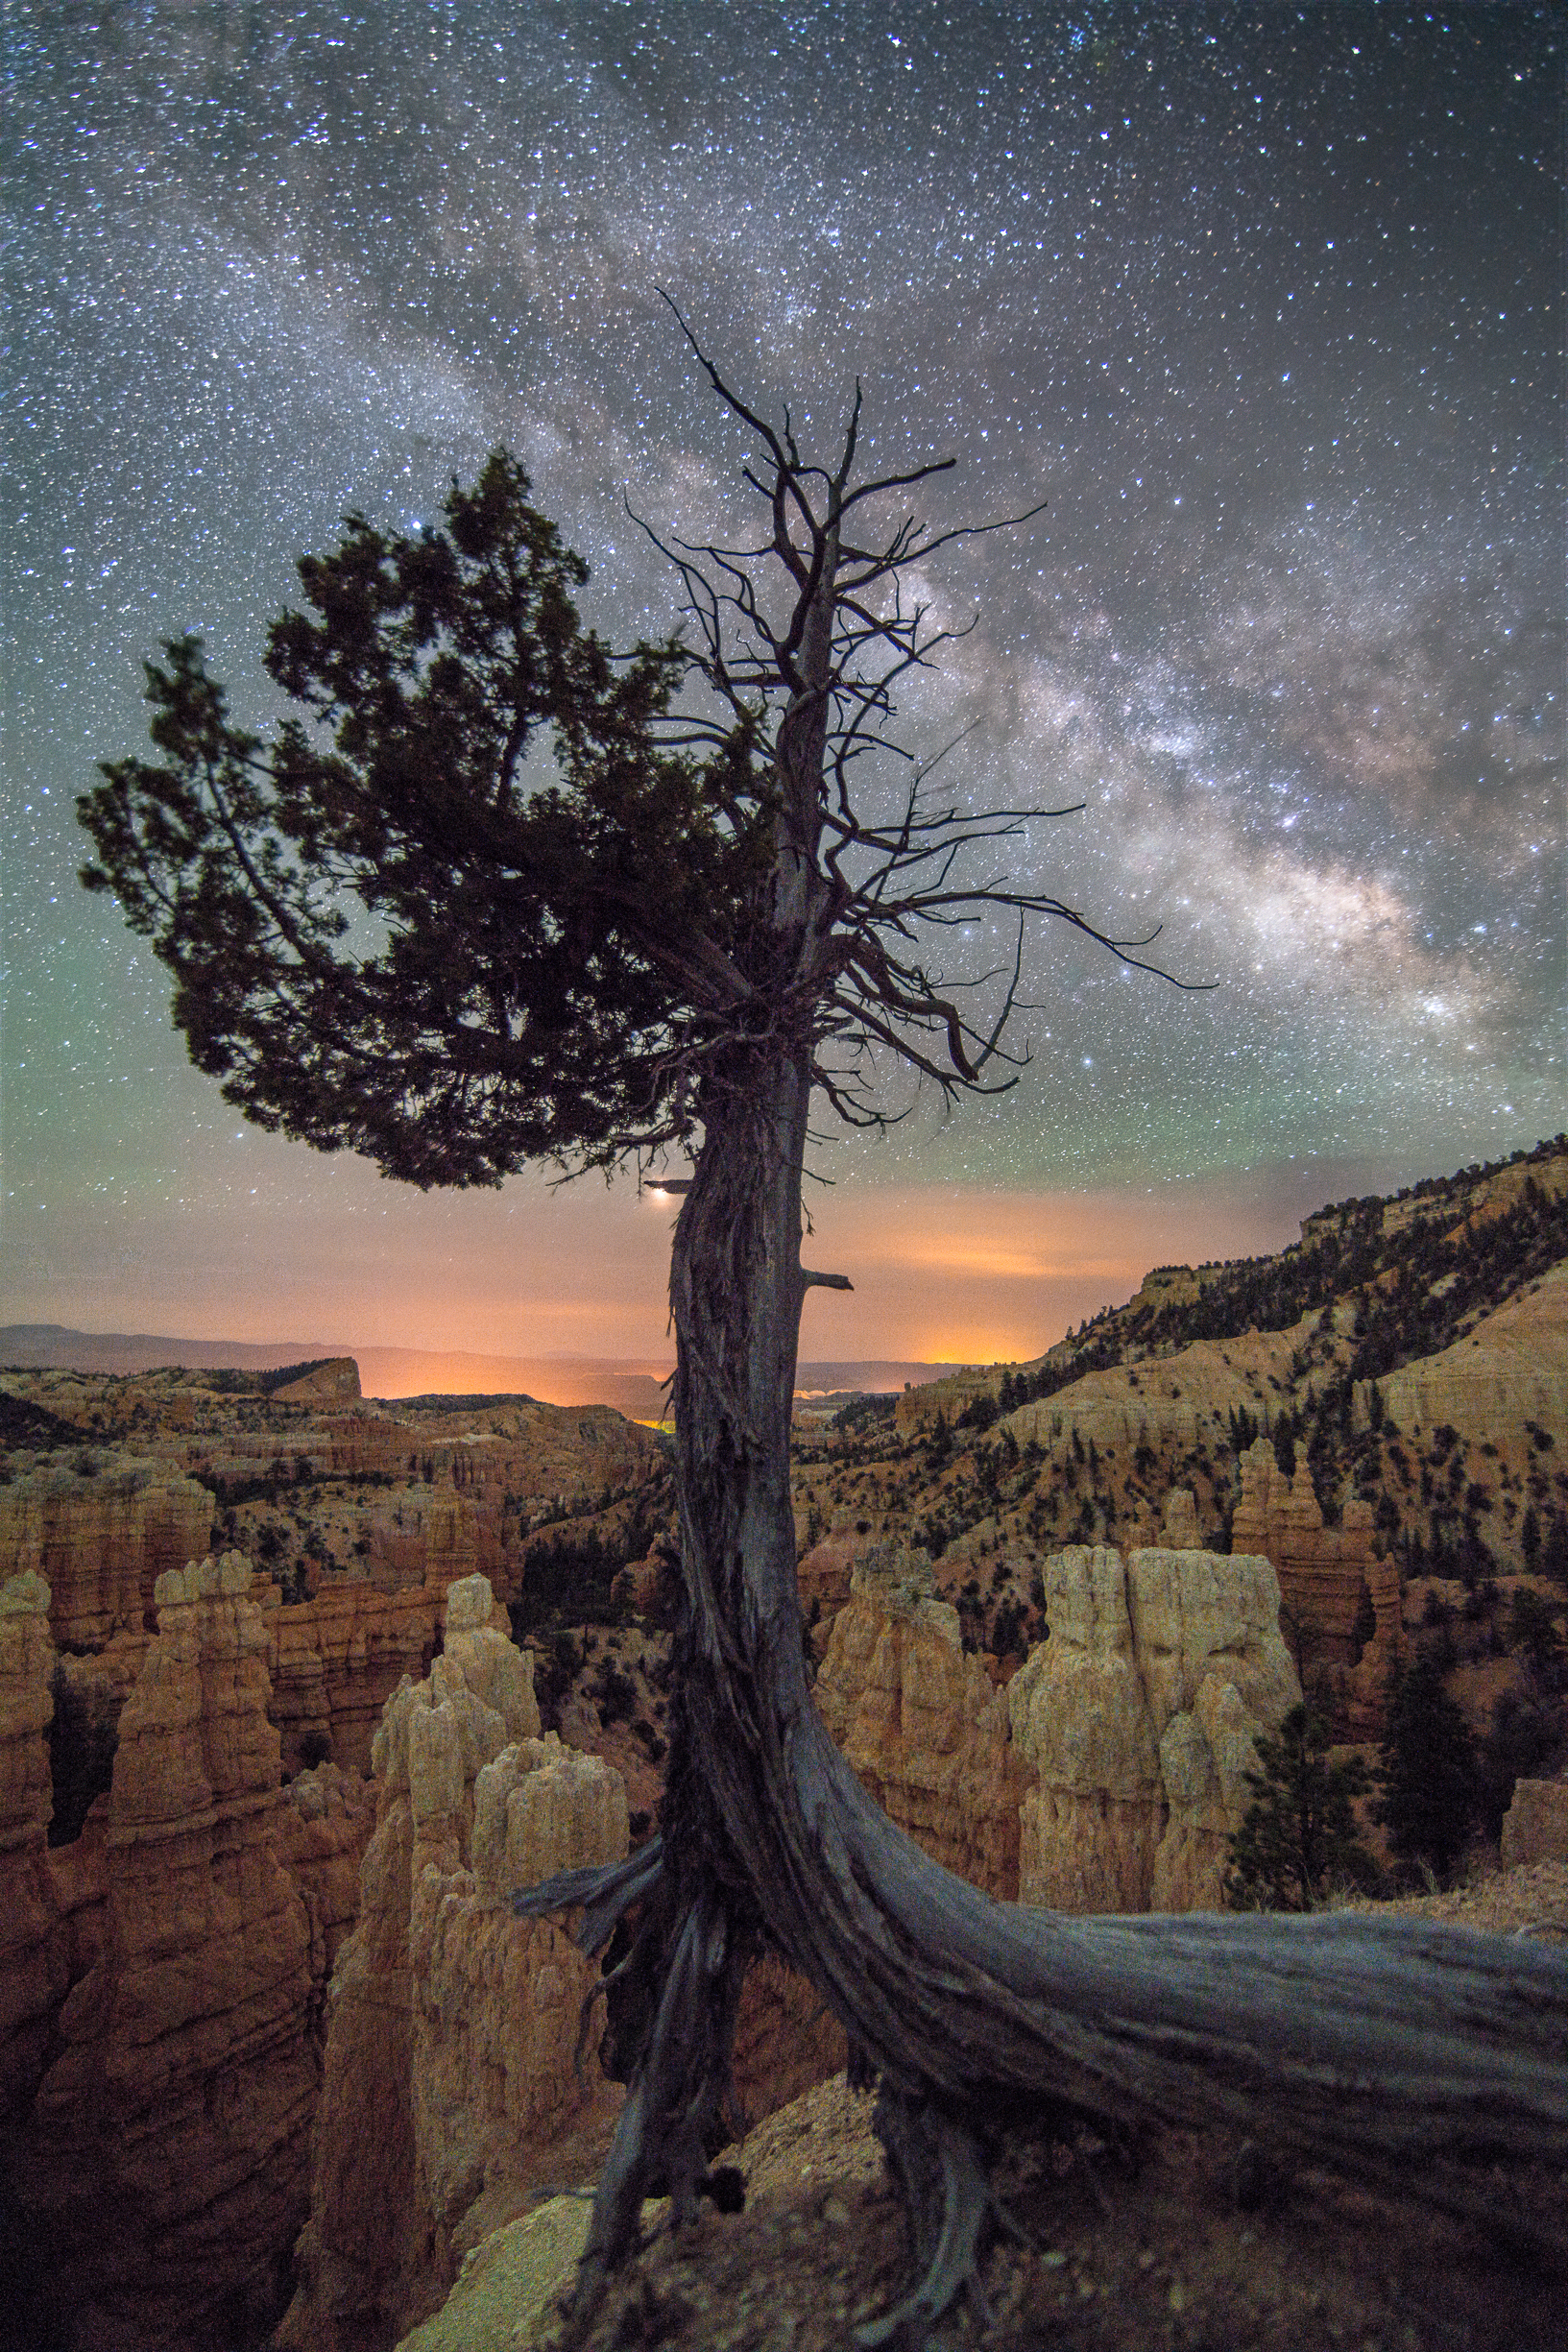 Tree and Hoodoos in Bryce Canyon National Park at Night